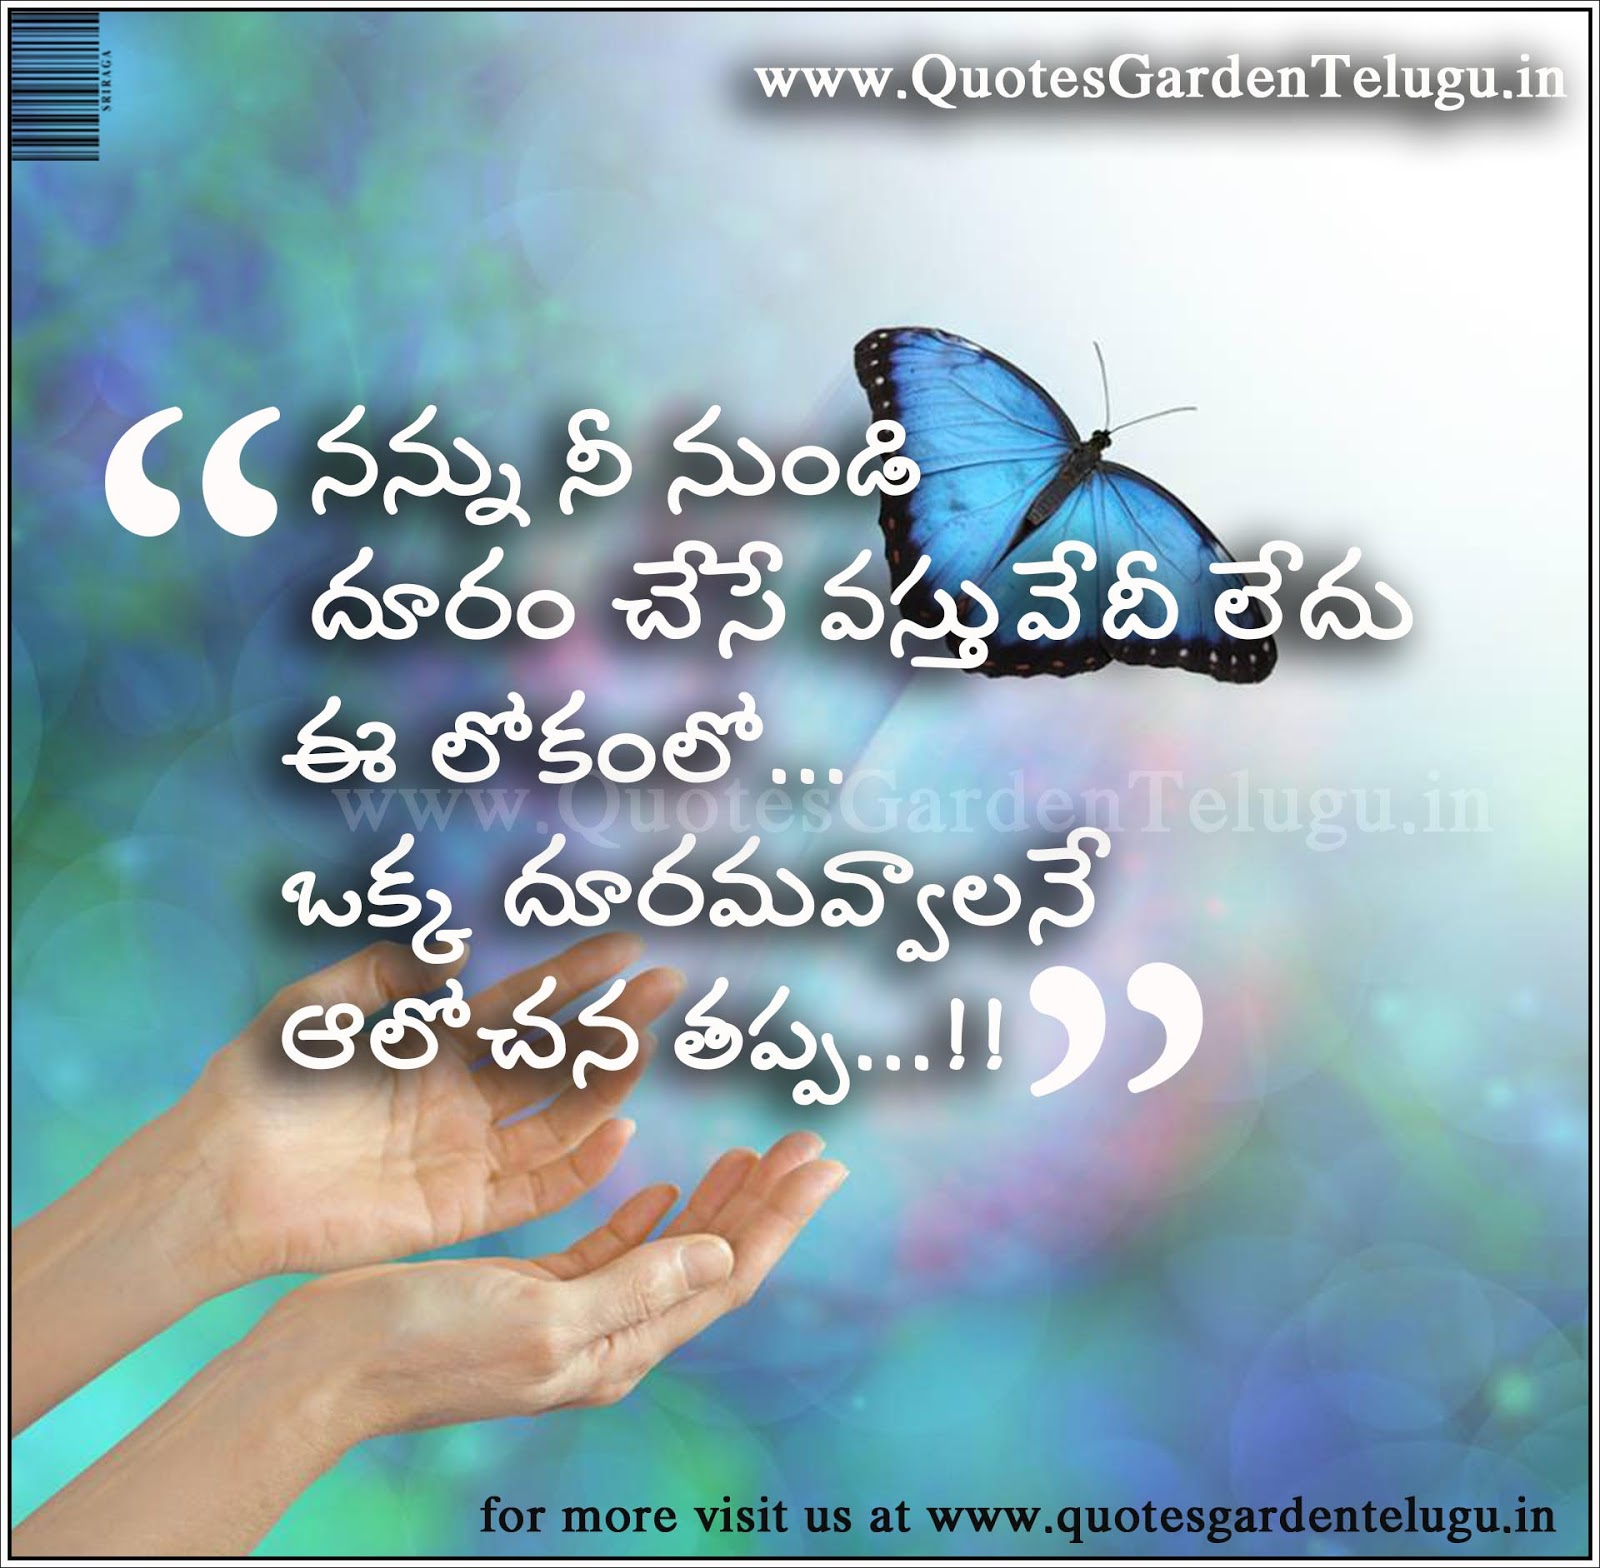 Telugu Love Quotes Interesting Best Telugu Heart Touching Love Quotes With Hd Images 652  Quotes